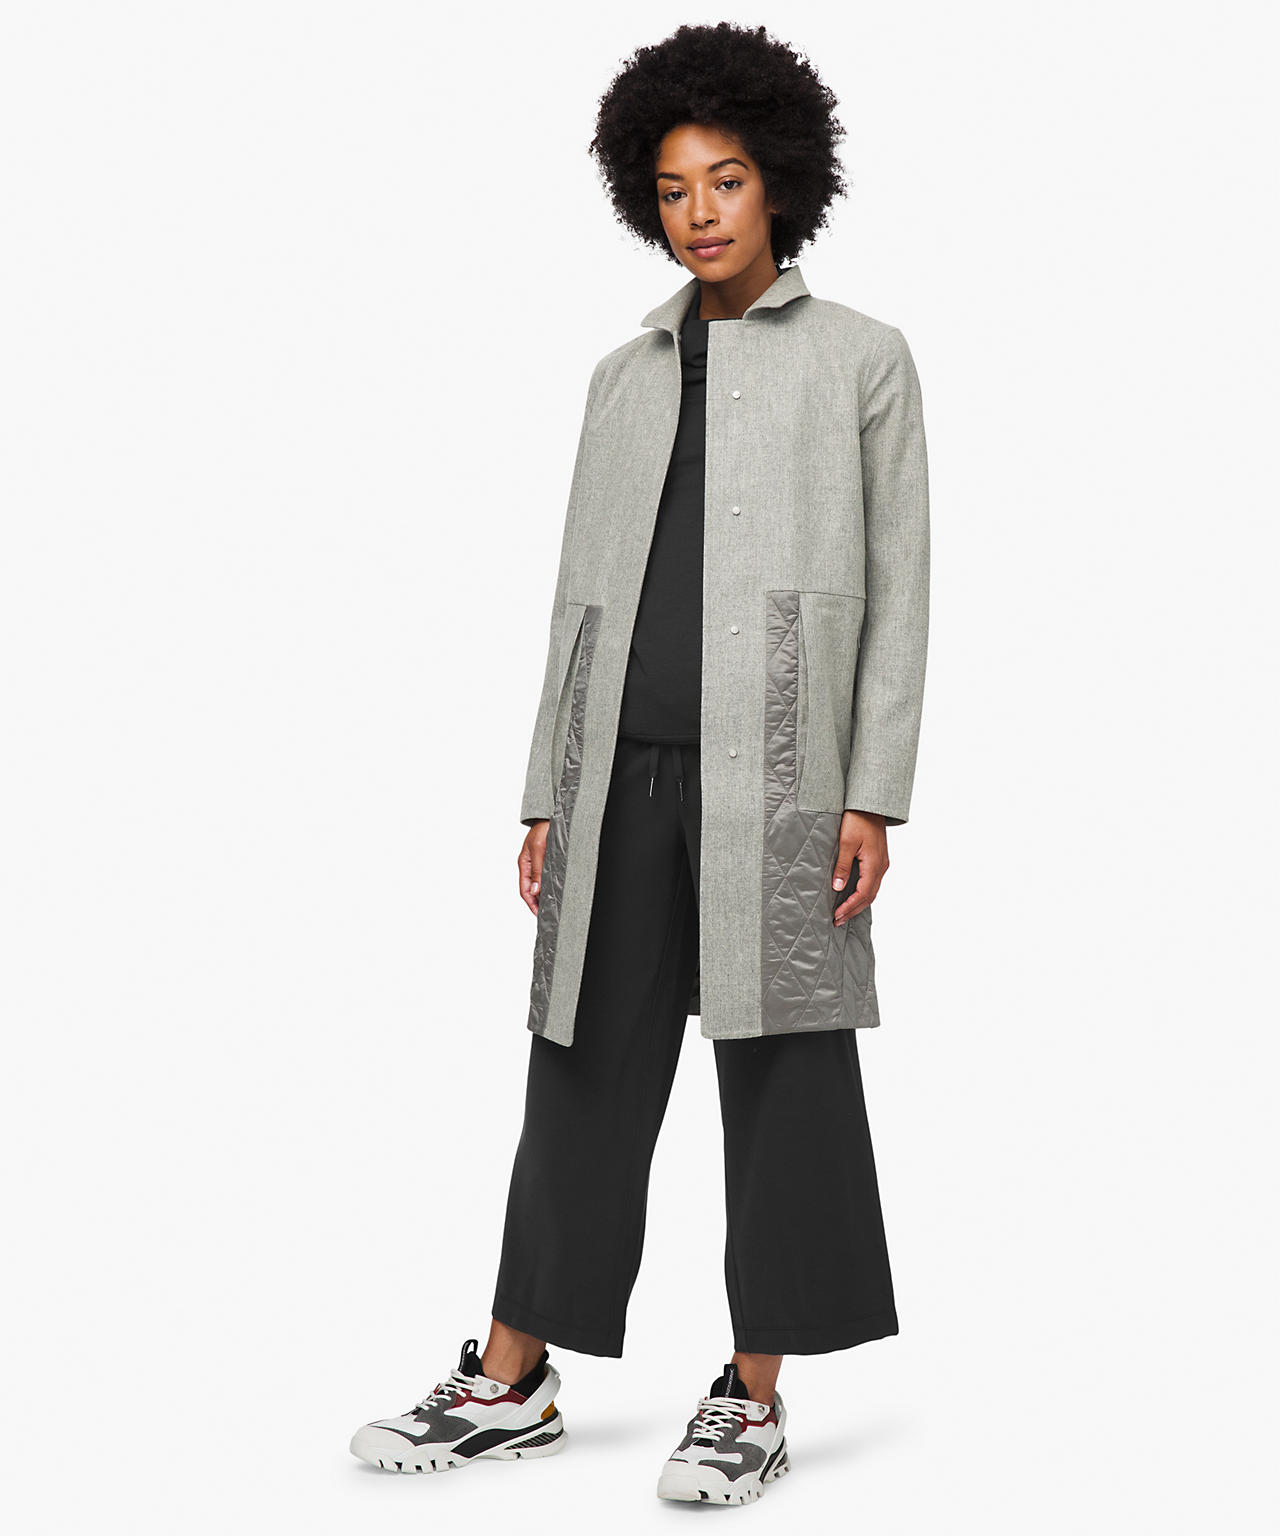 Roam Far Wool Coat, Shop The Lululemon Upload